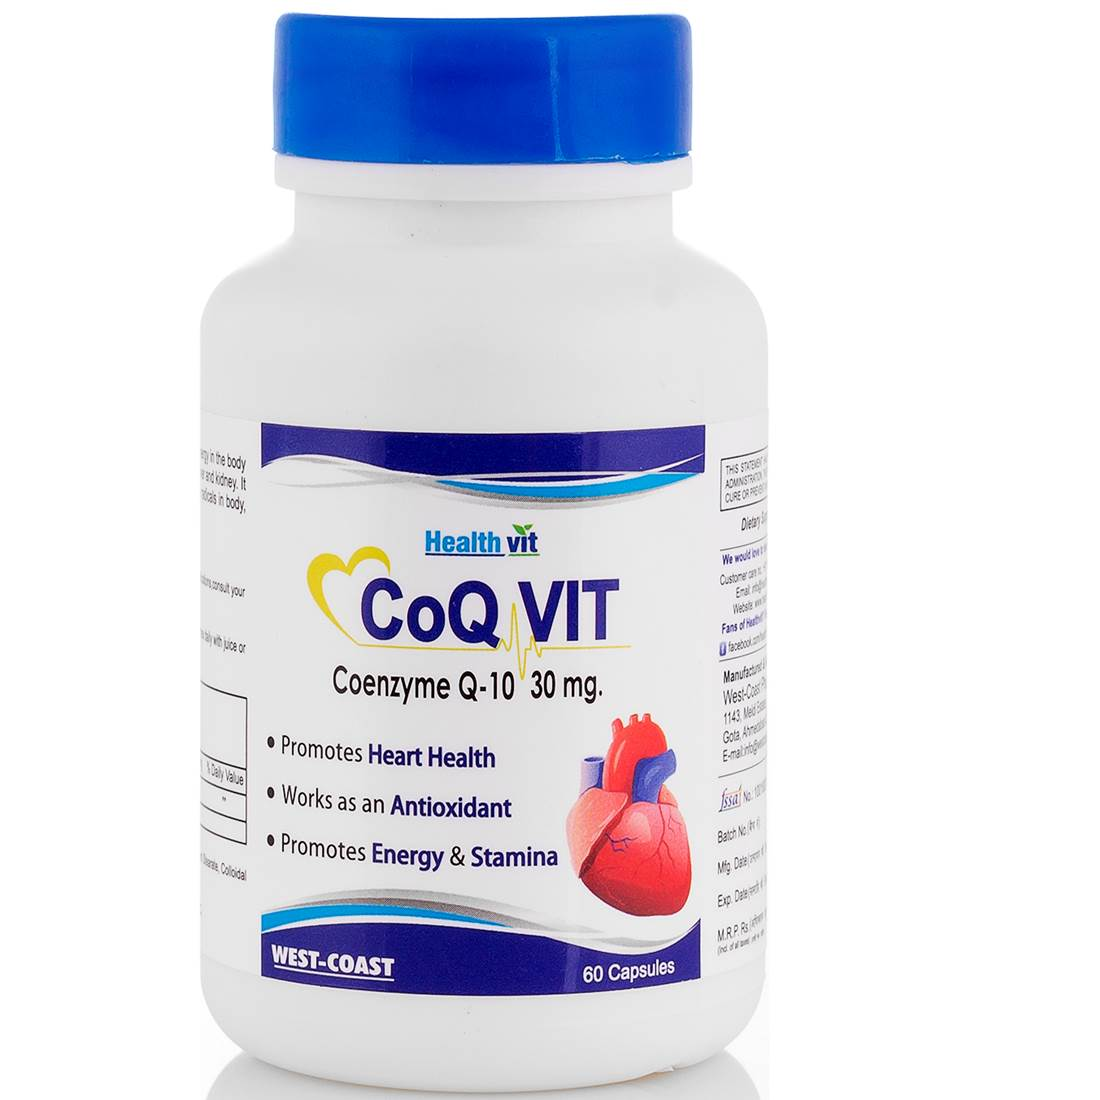 Buy Healthvit CoQ Vit Coenzyme Q-10 30mg 60caps